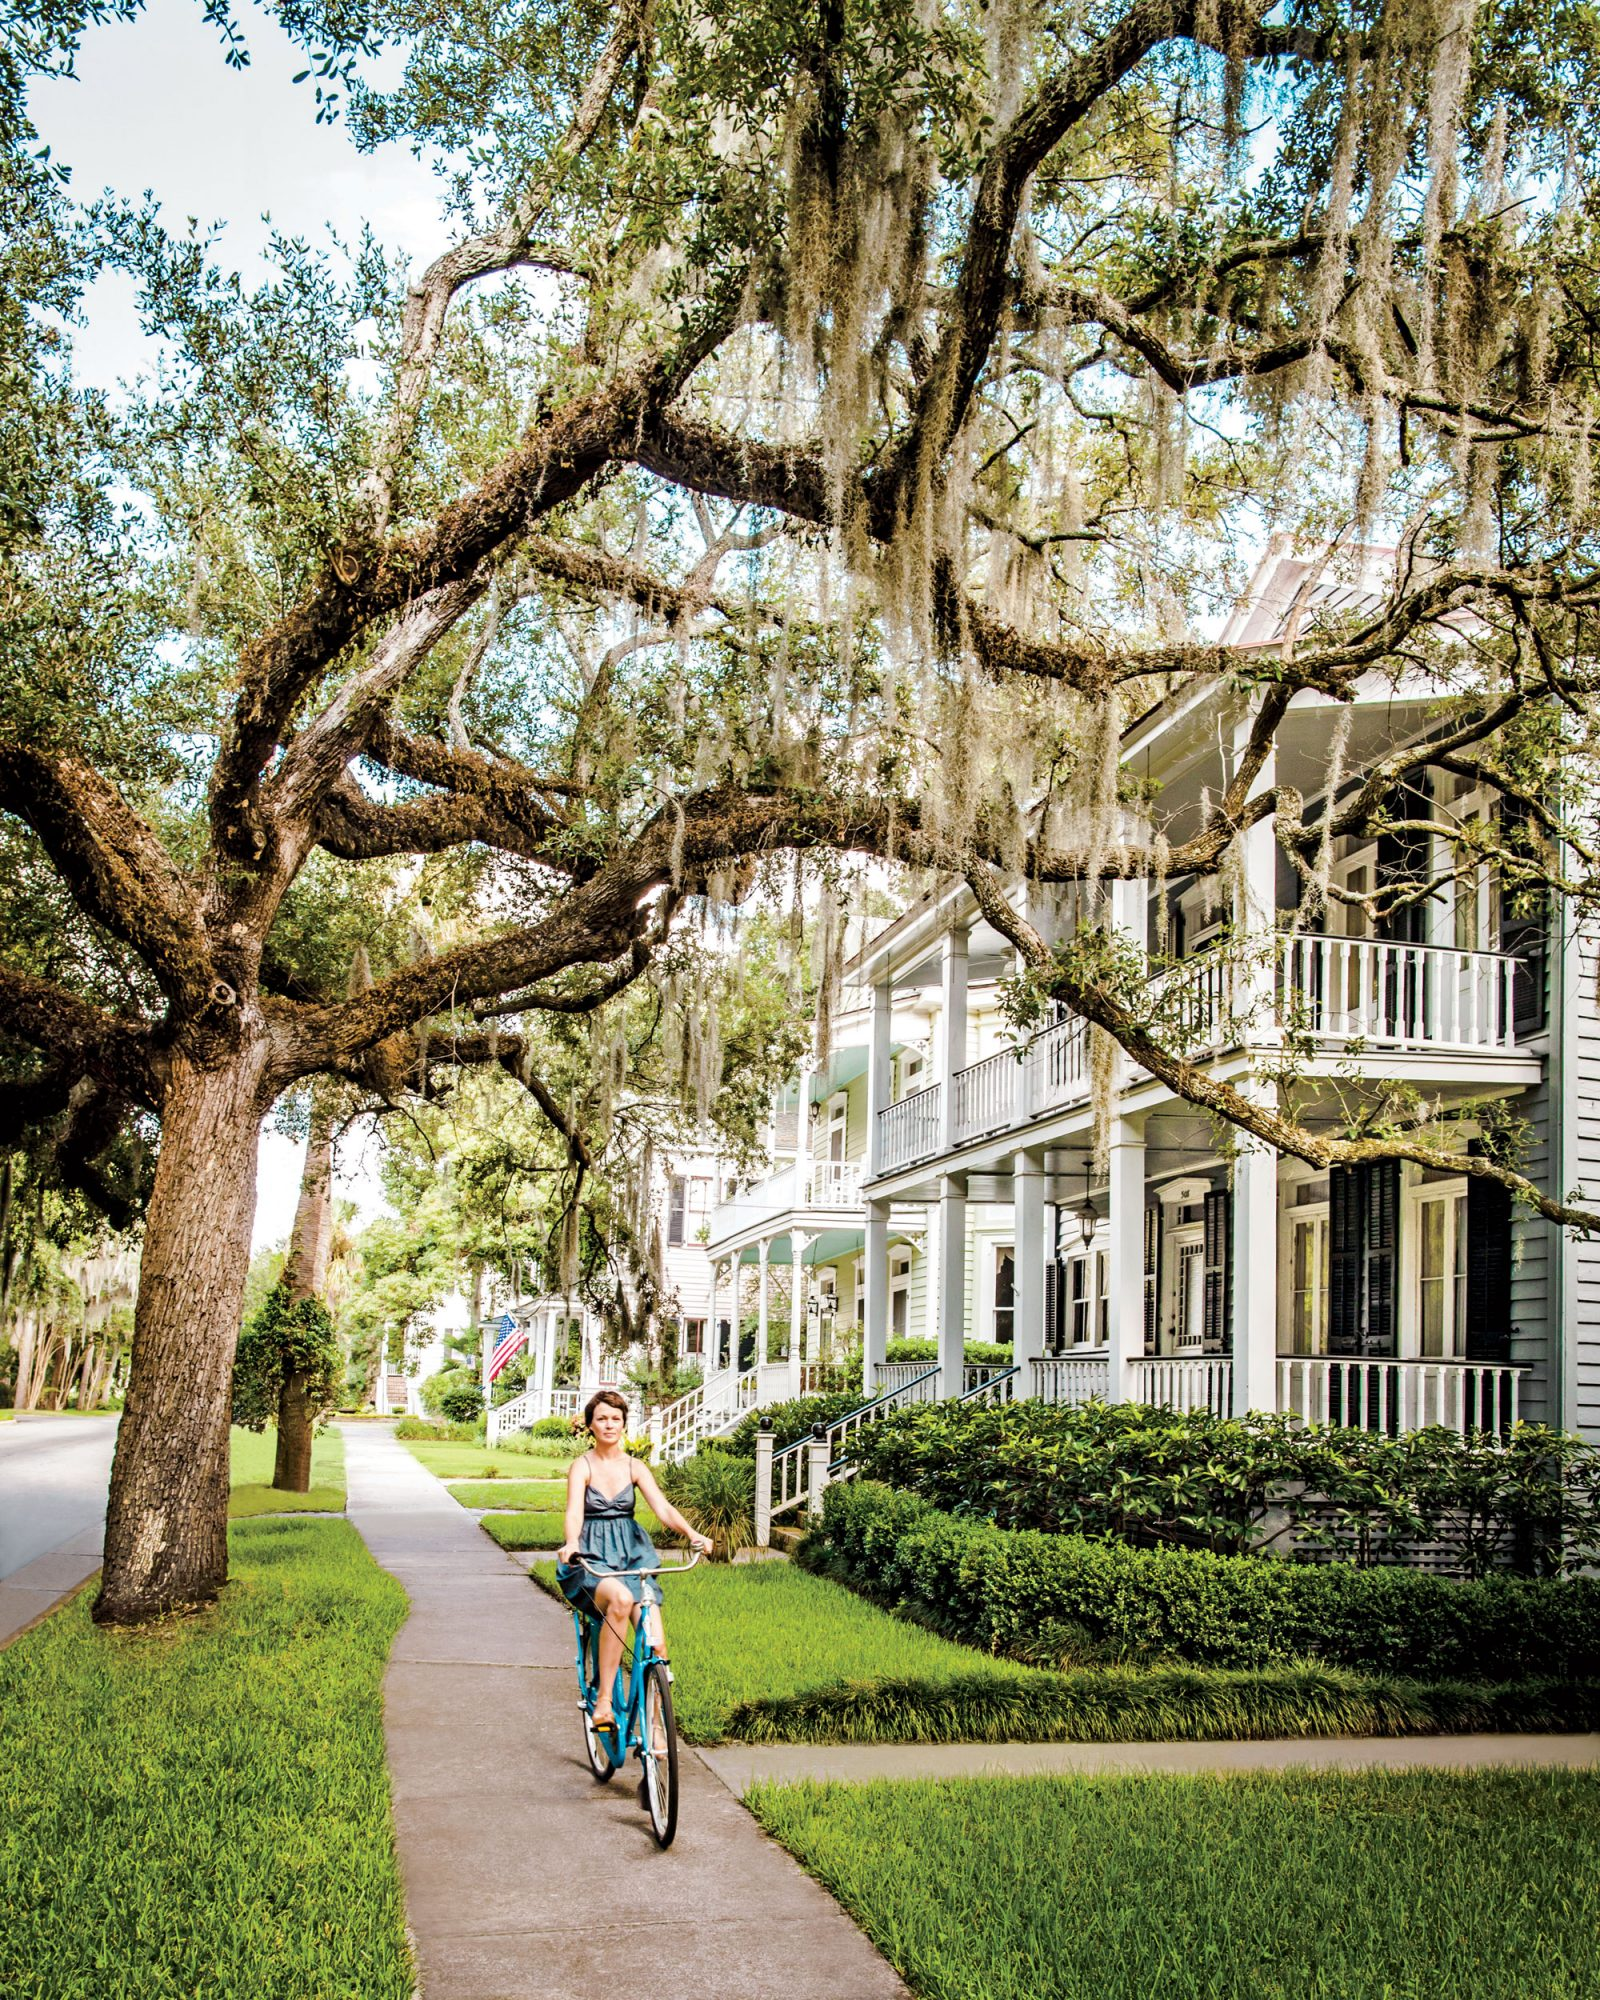 Downtown Beaufort Homes